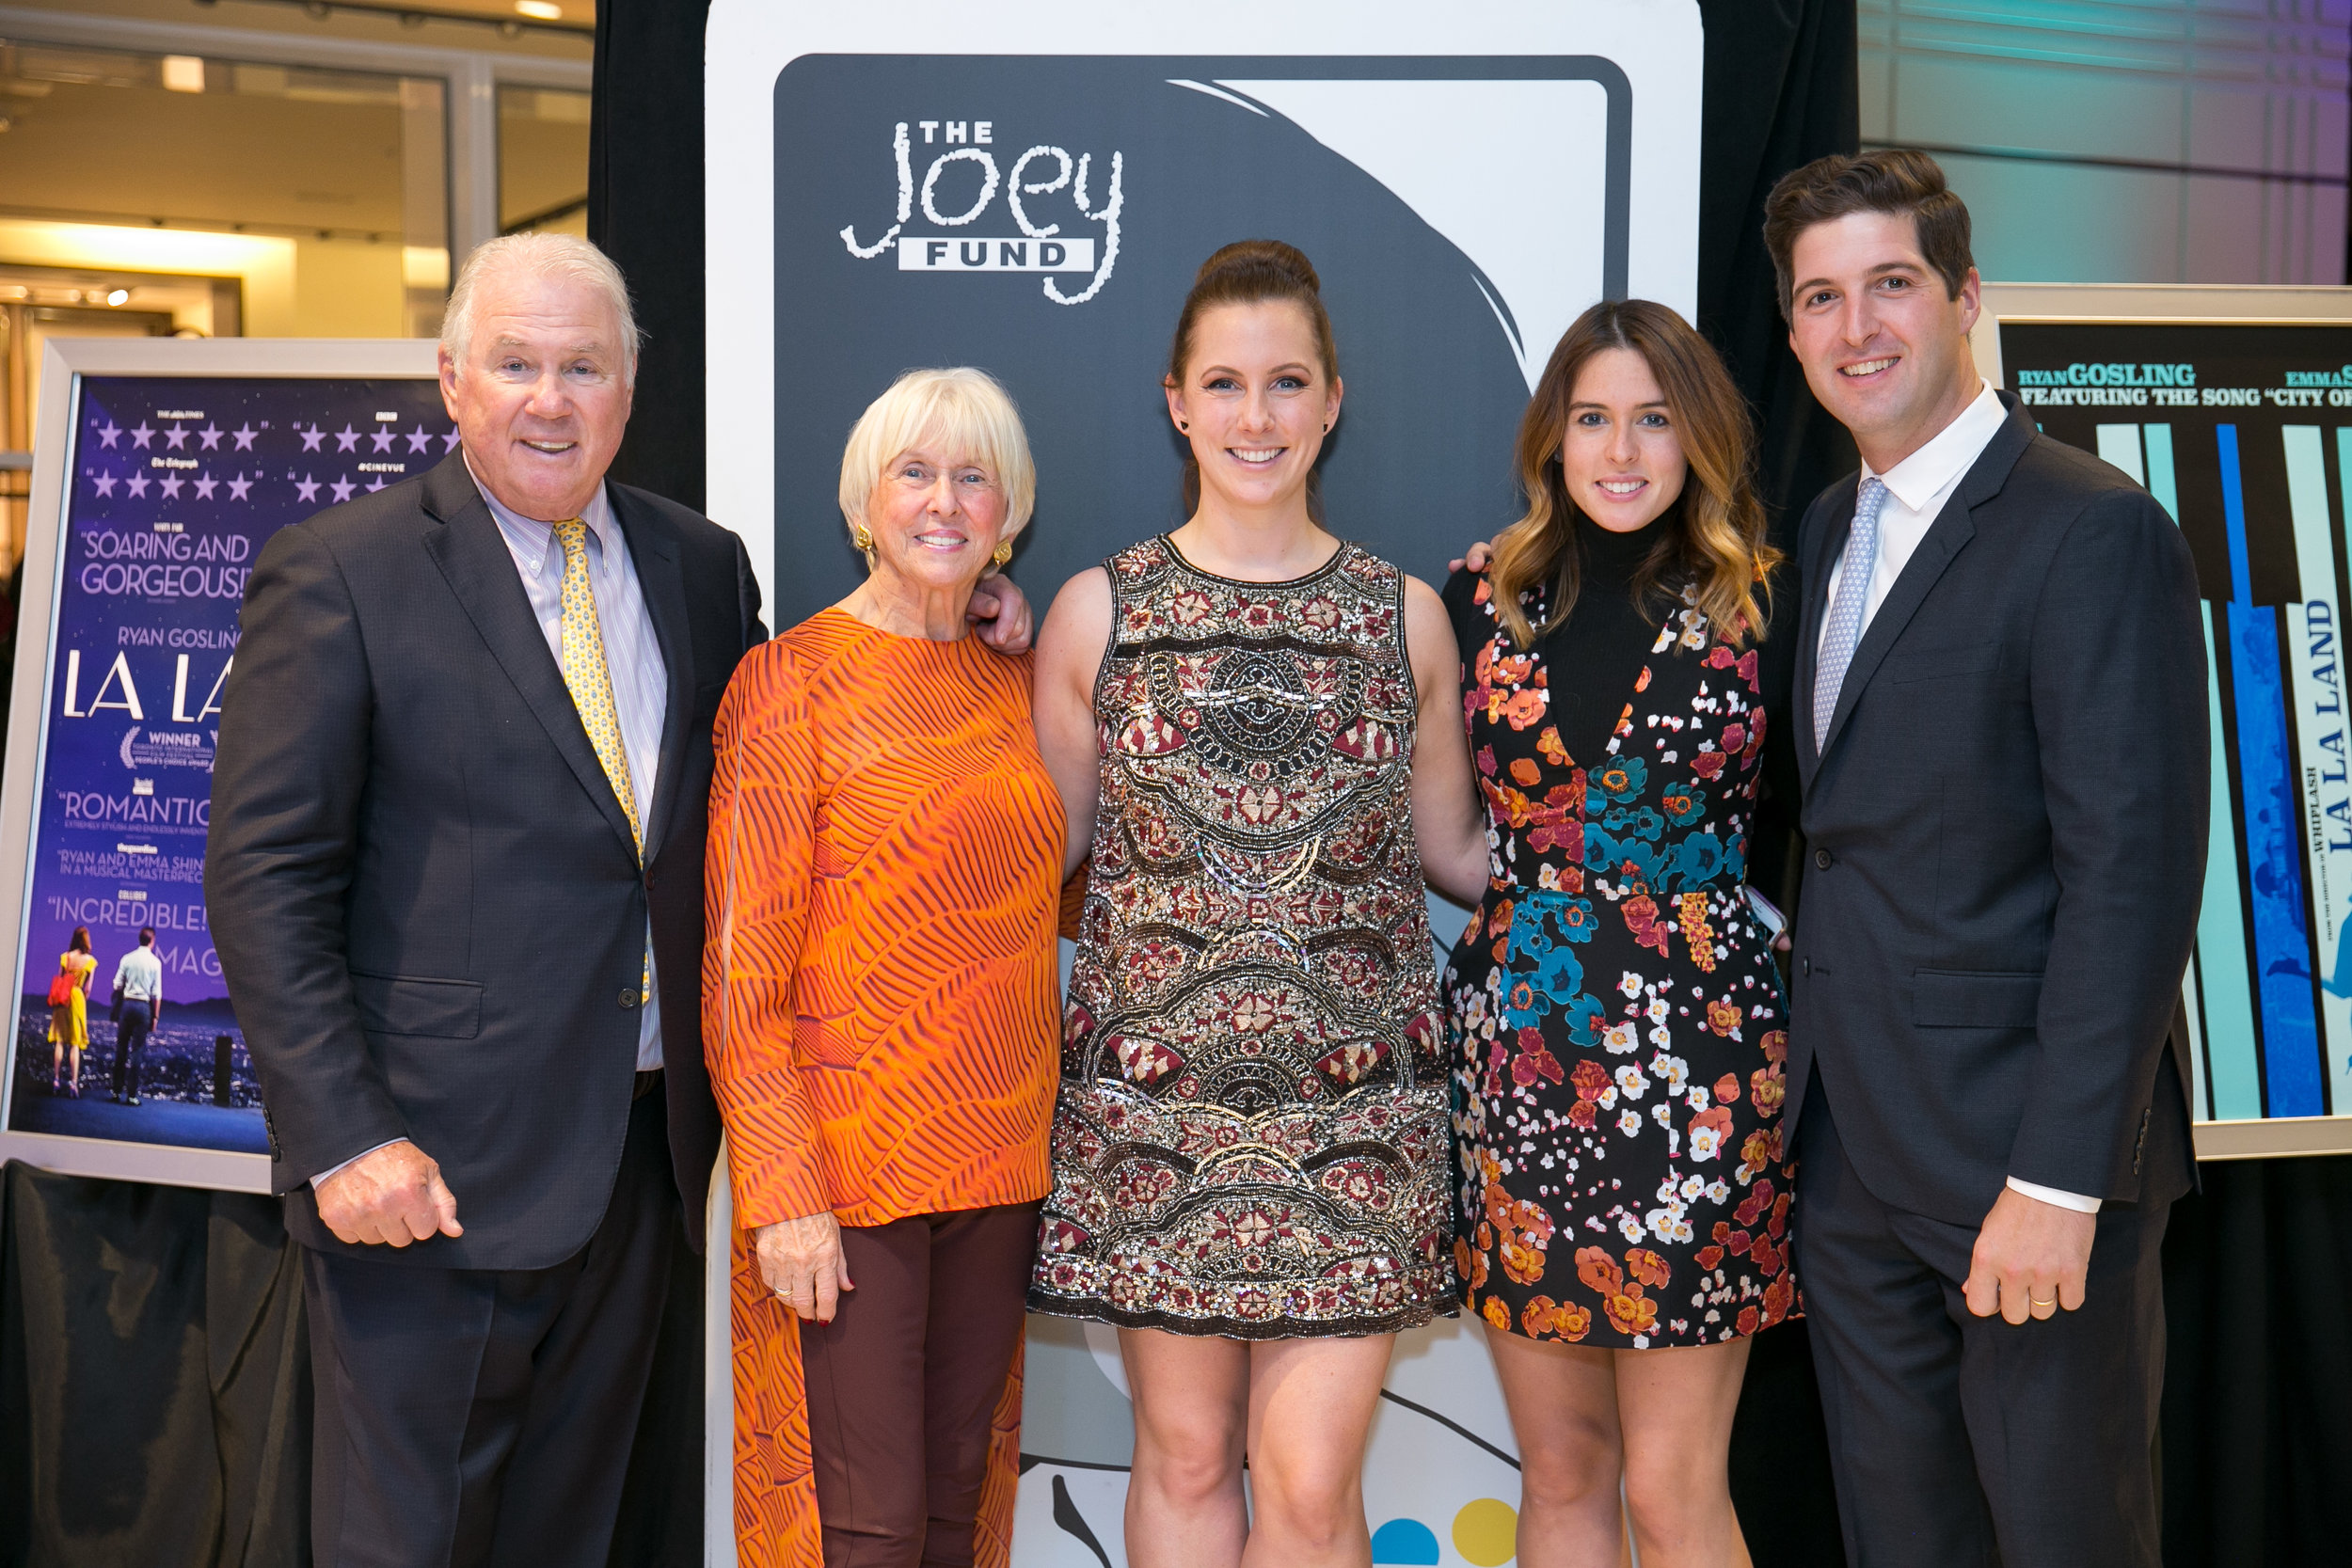 The 32nd Annual Joey Fund Film Premiere -